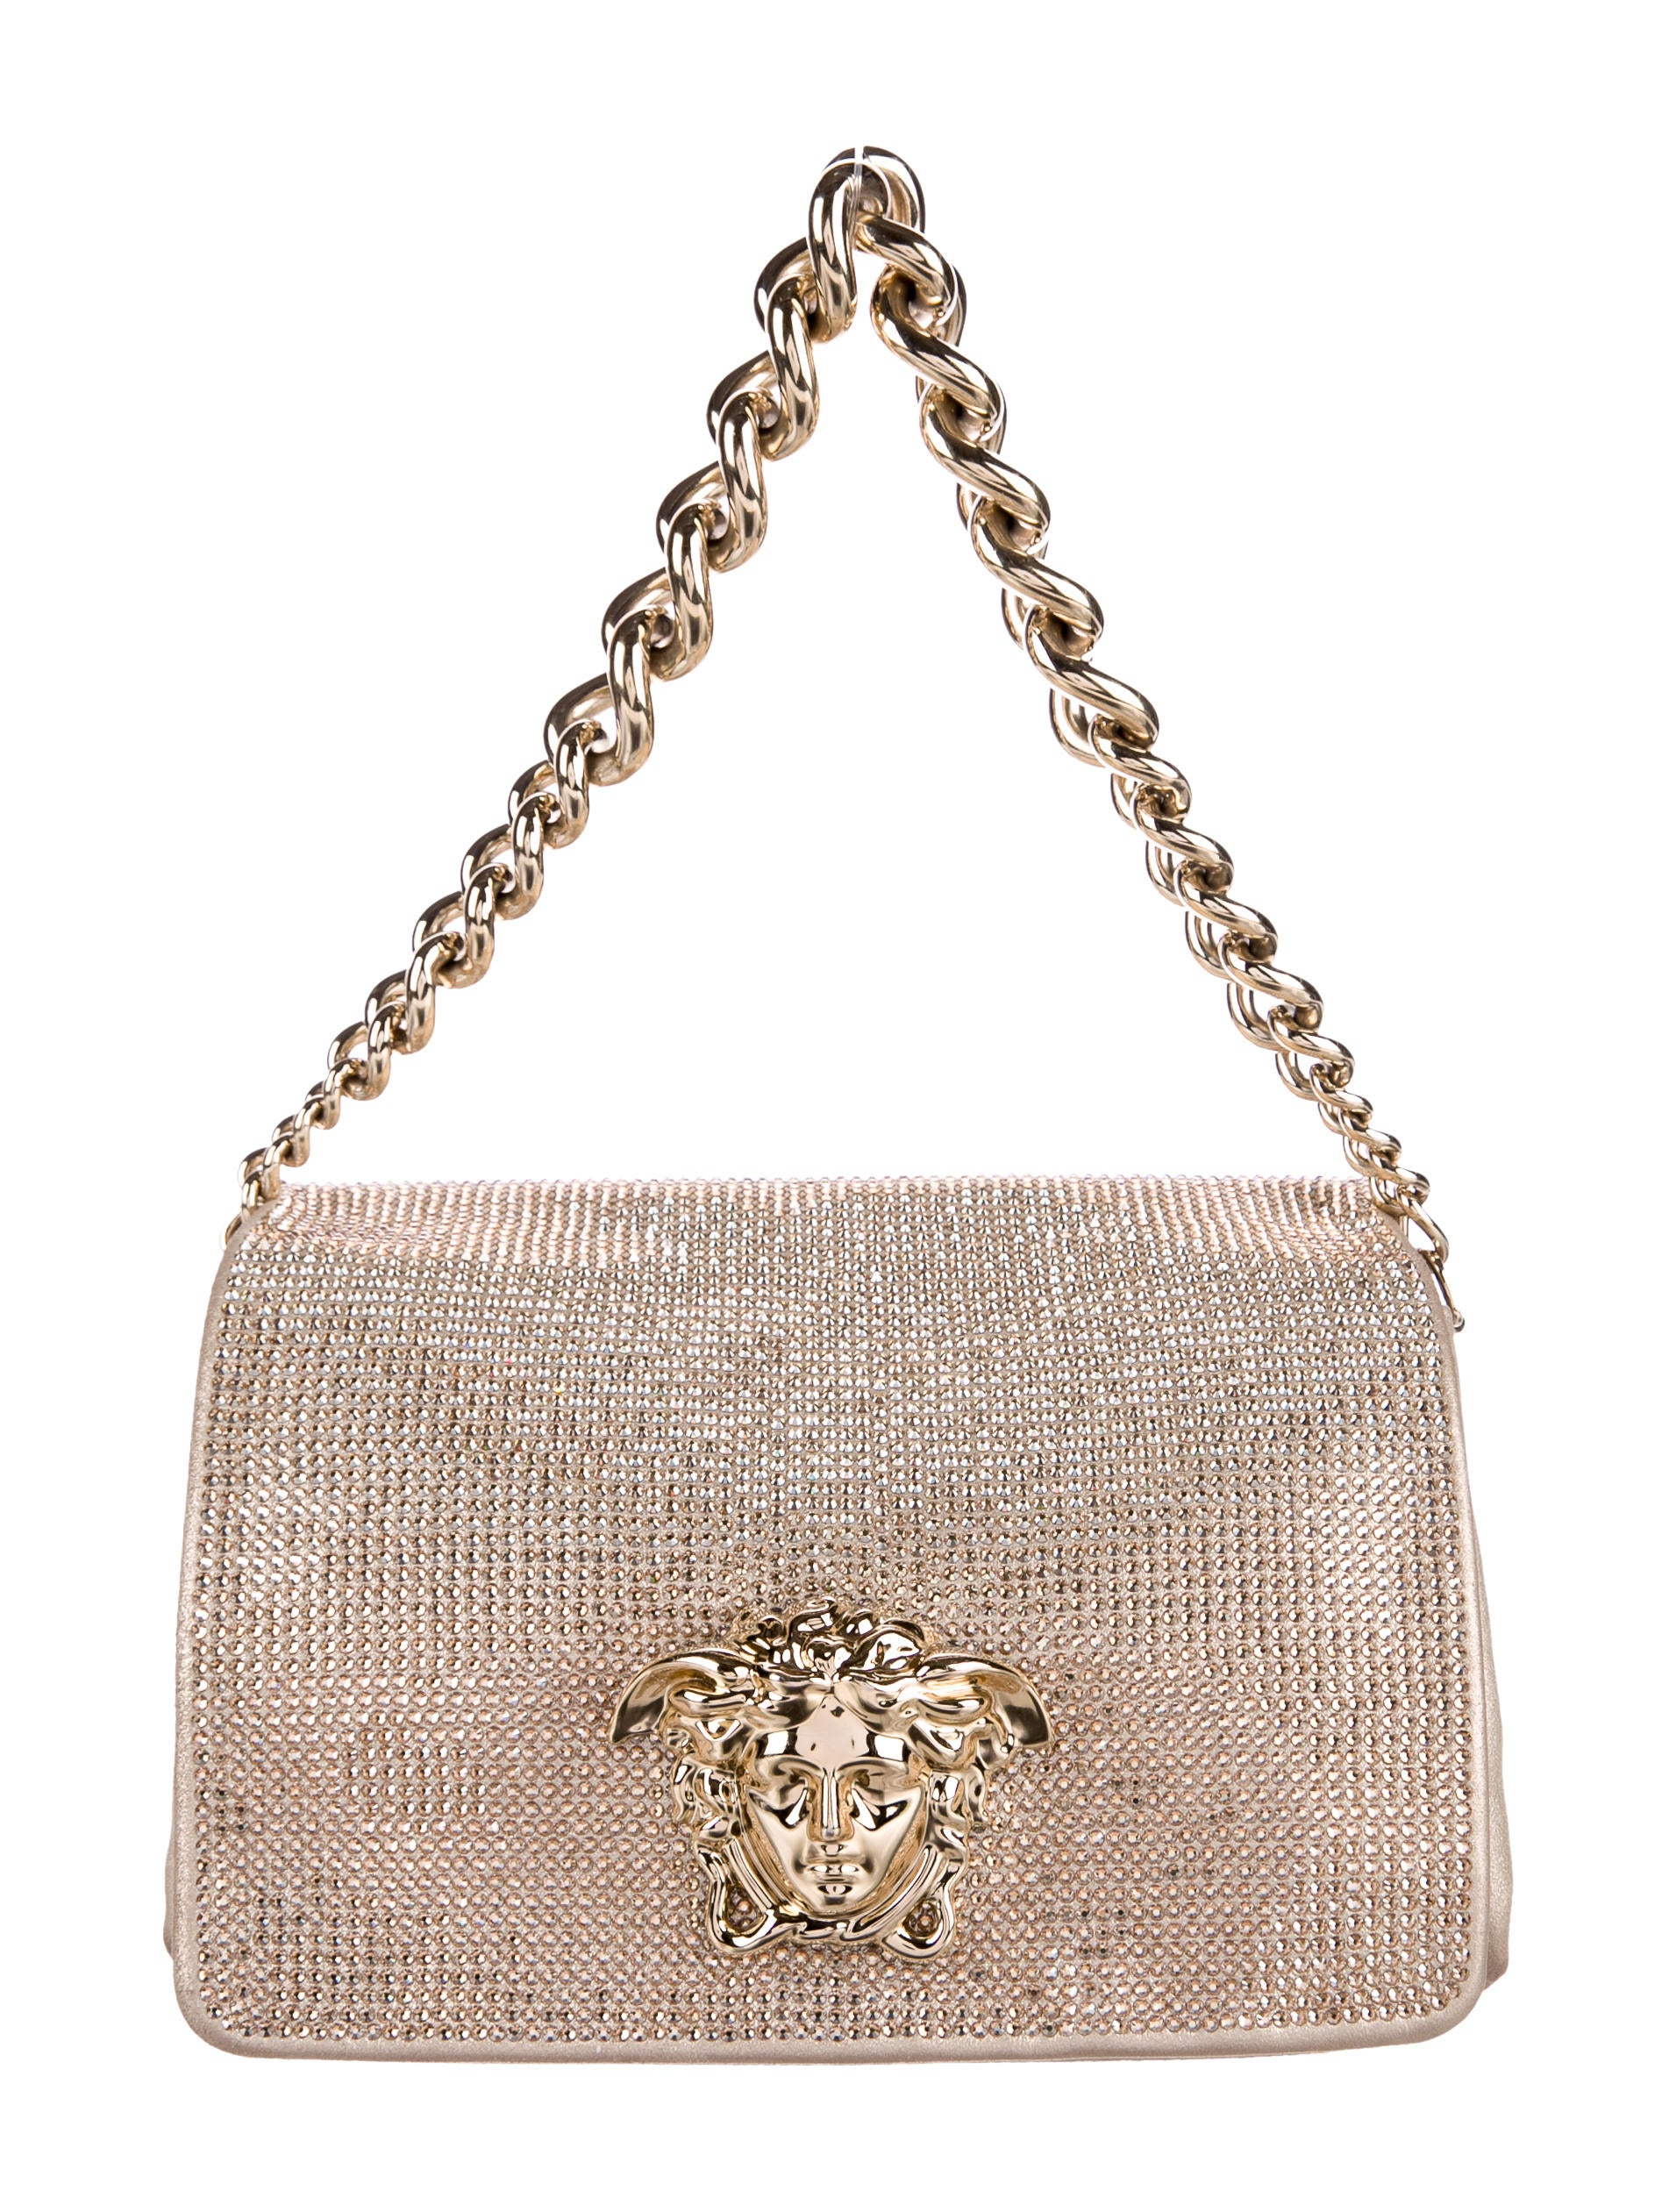 674c59cb6c79 Versace Sultan Crystal Shoulder Bag - Handbags - VES32428